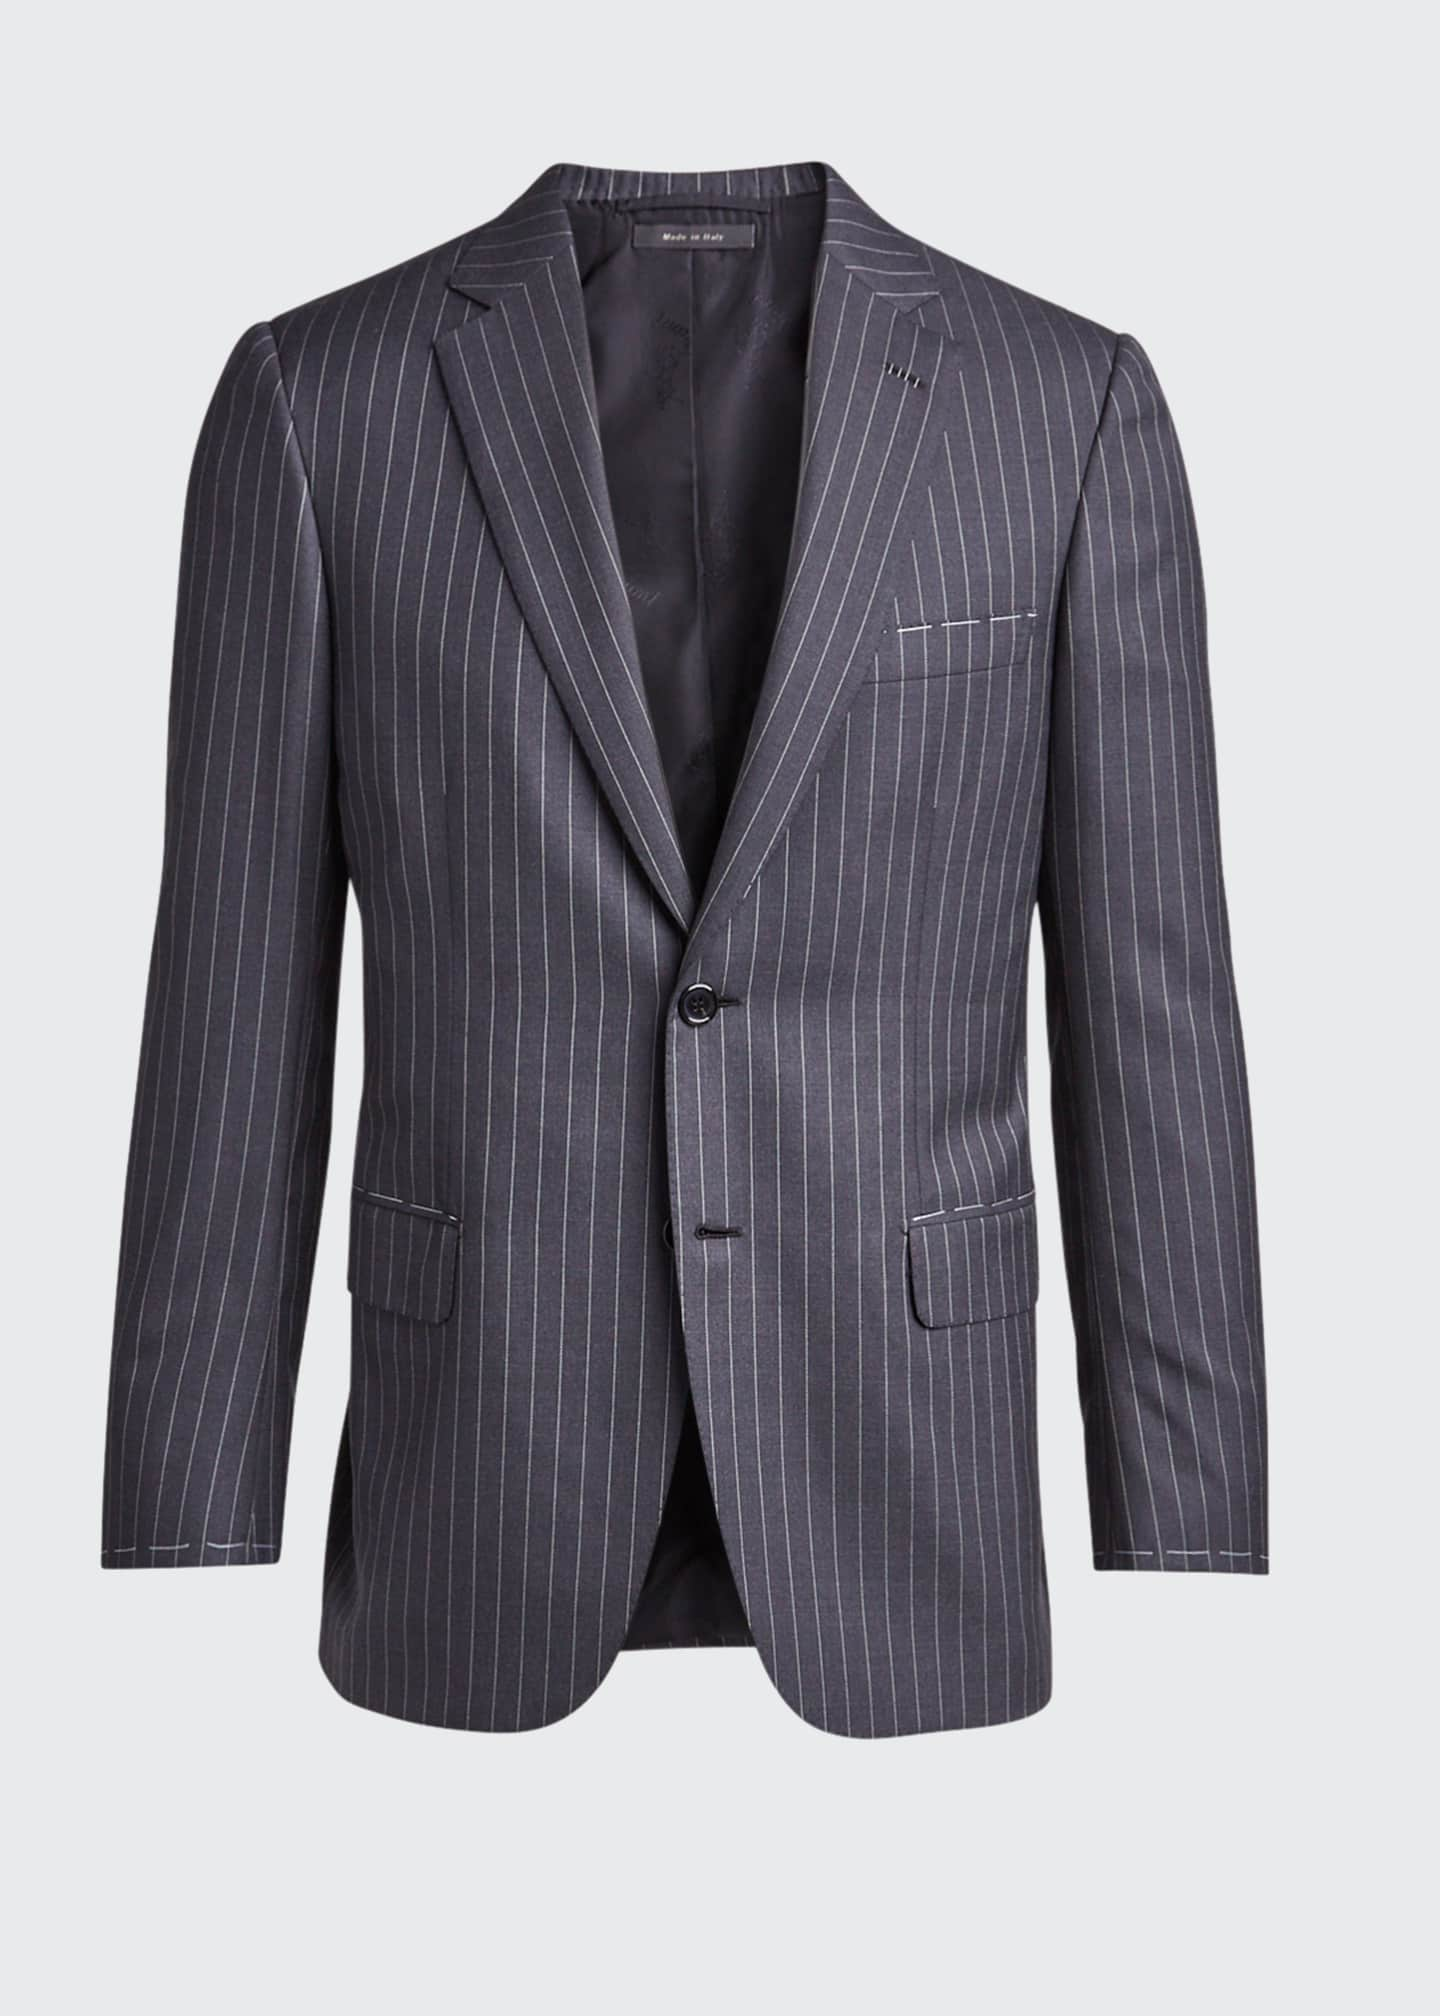 Image 5 of 5: Men's Pinstriped Two-Piece Suit